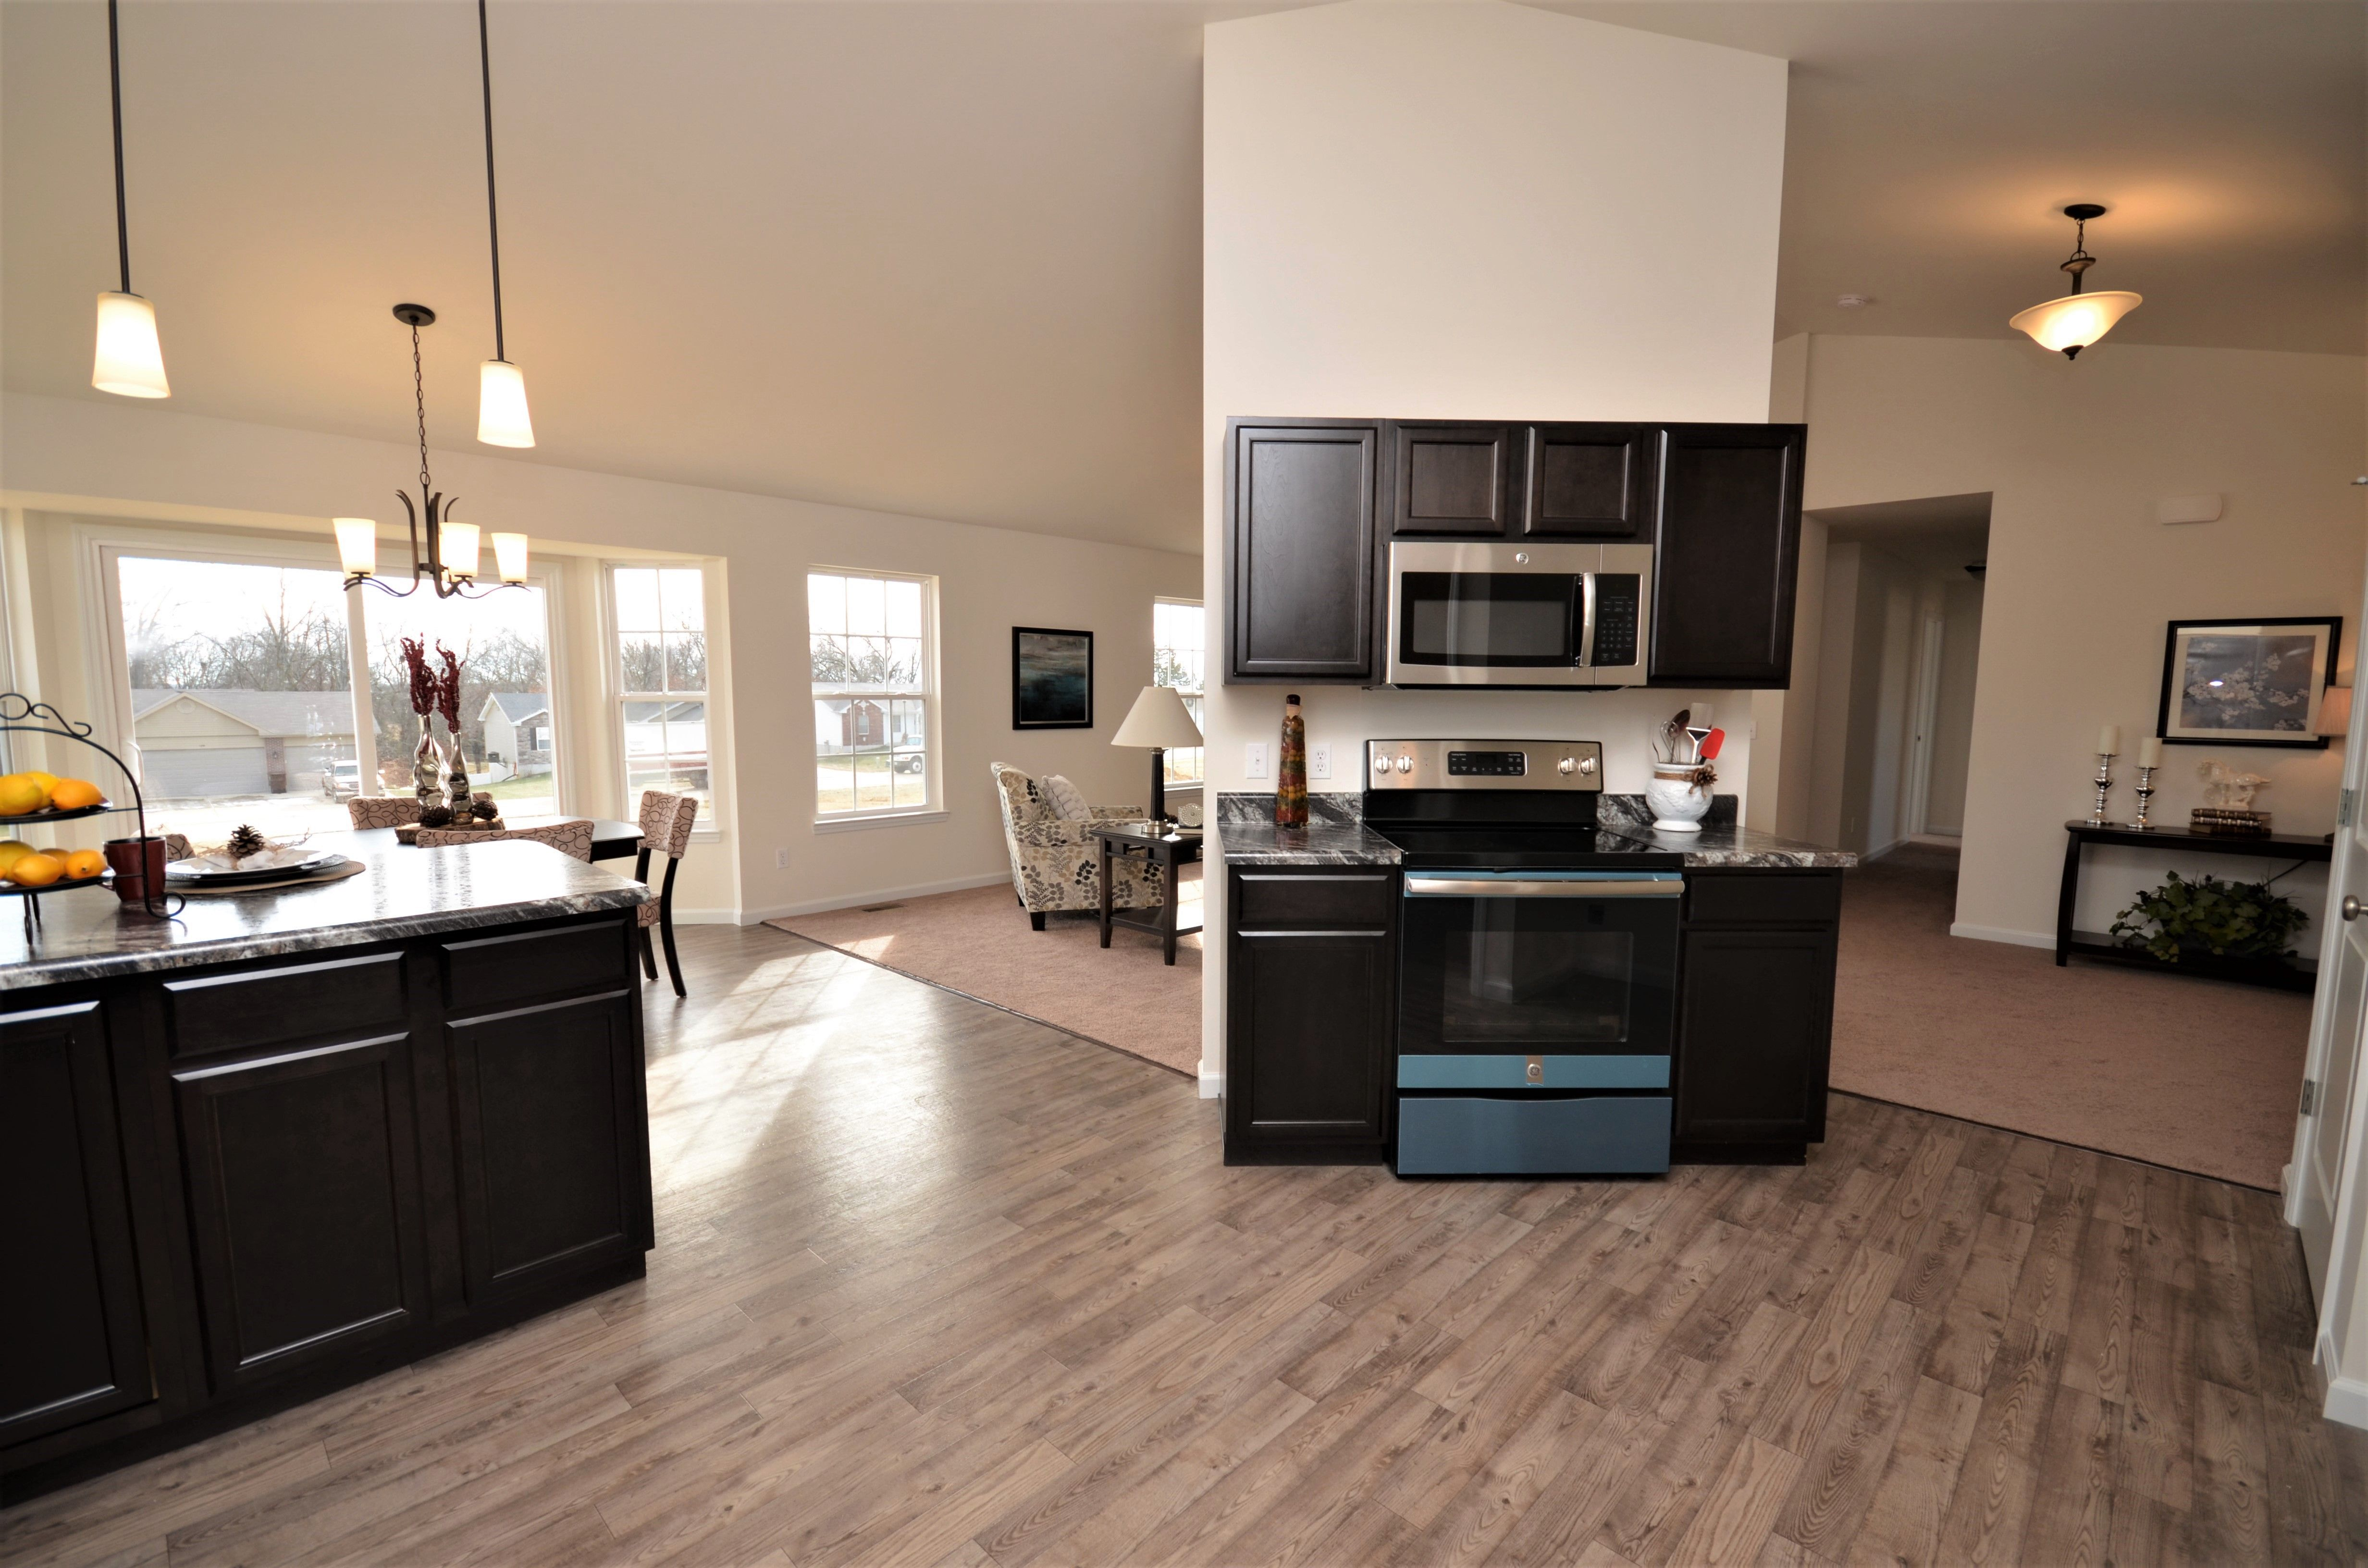 Kitchen featured in The Charleston By Cannon Builders, Inc.  in St. Louis, MO